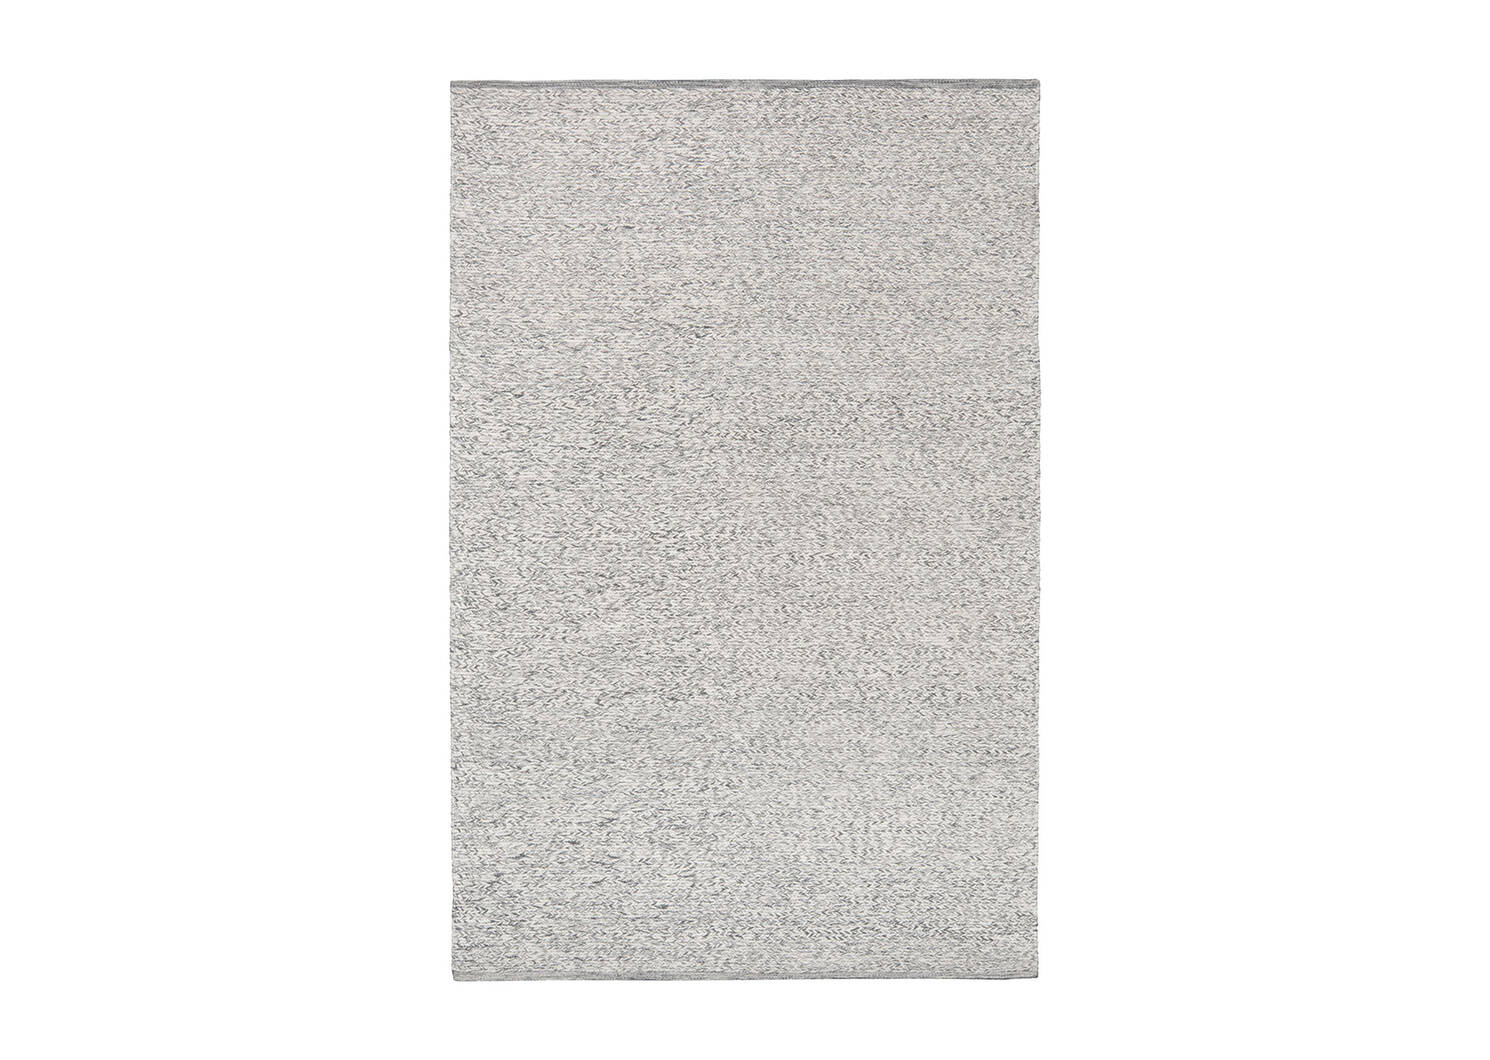 Cosette Rug 108x144 Ivory/Grey